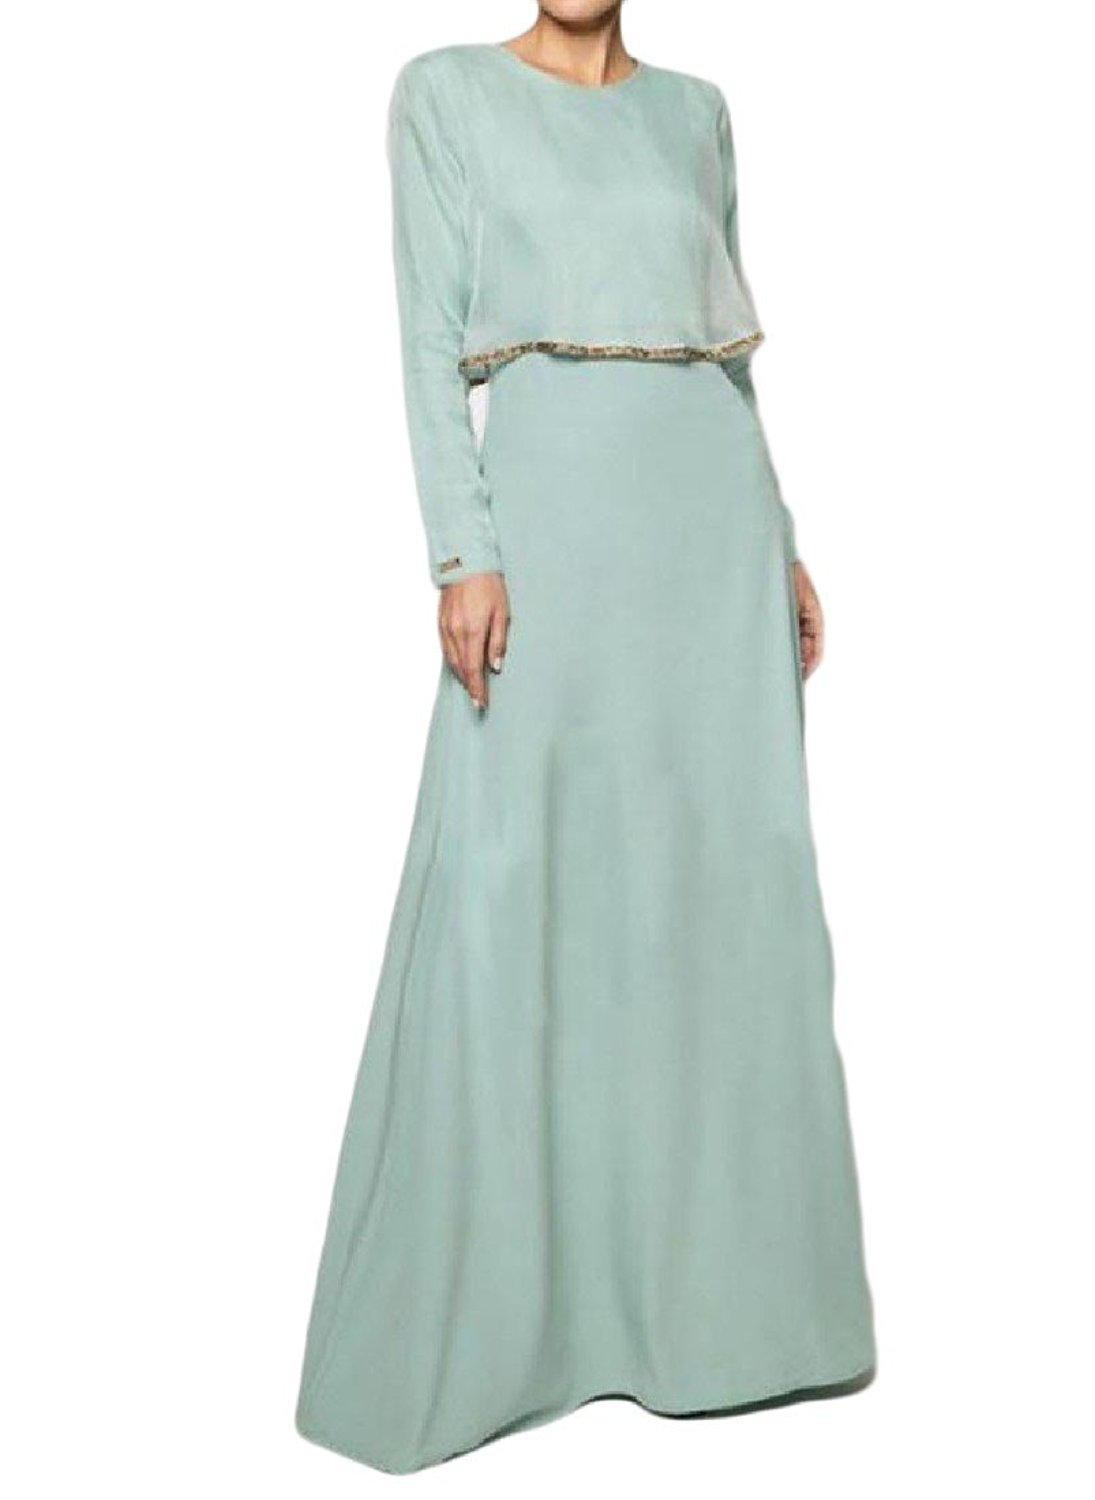 Zimaes-Women Muslim Islamic Solid Colored Fit Vogue All-Match Long Dress